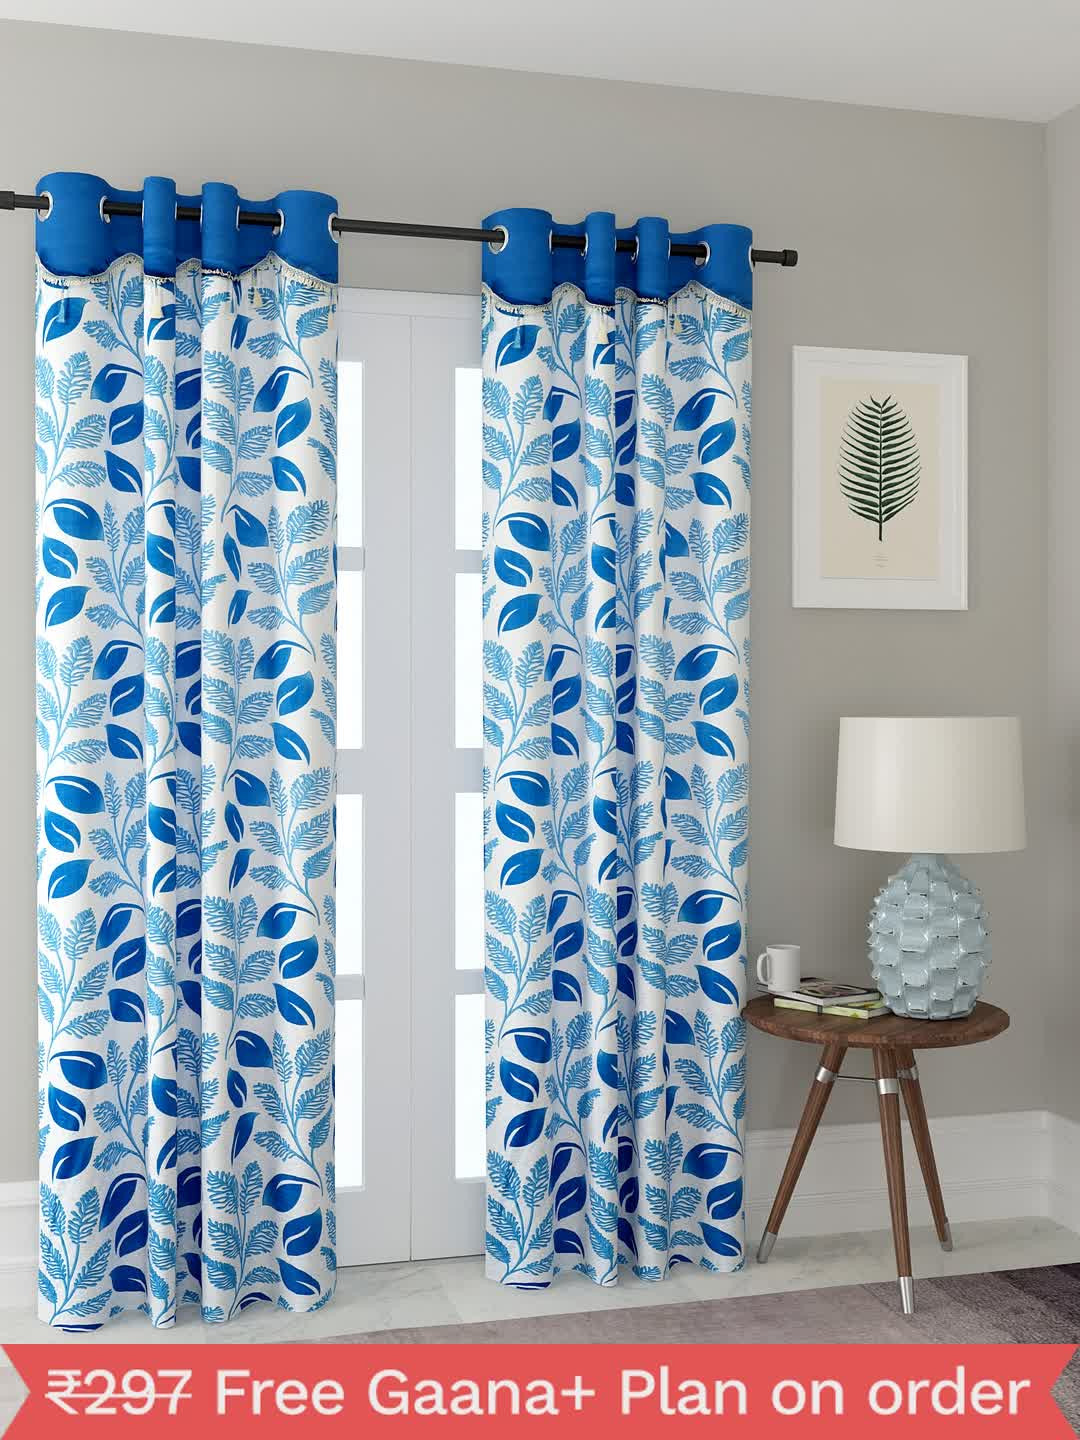 Polyester Printed Window Curtains for Bedroom, Kitchen, Kids or Living Room-004_Set of 2 - 1, Medium